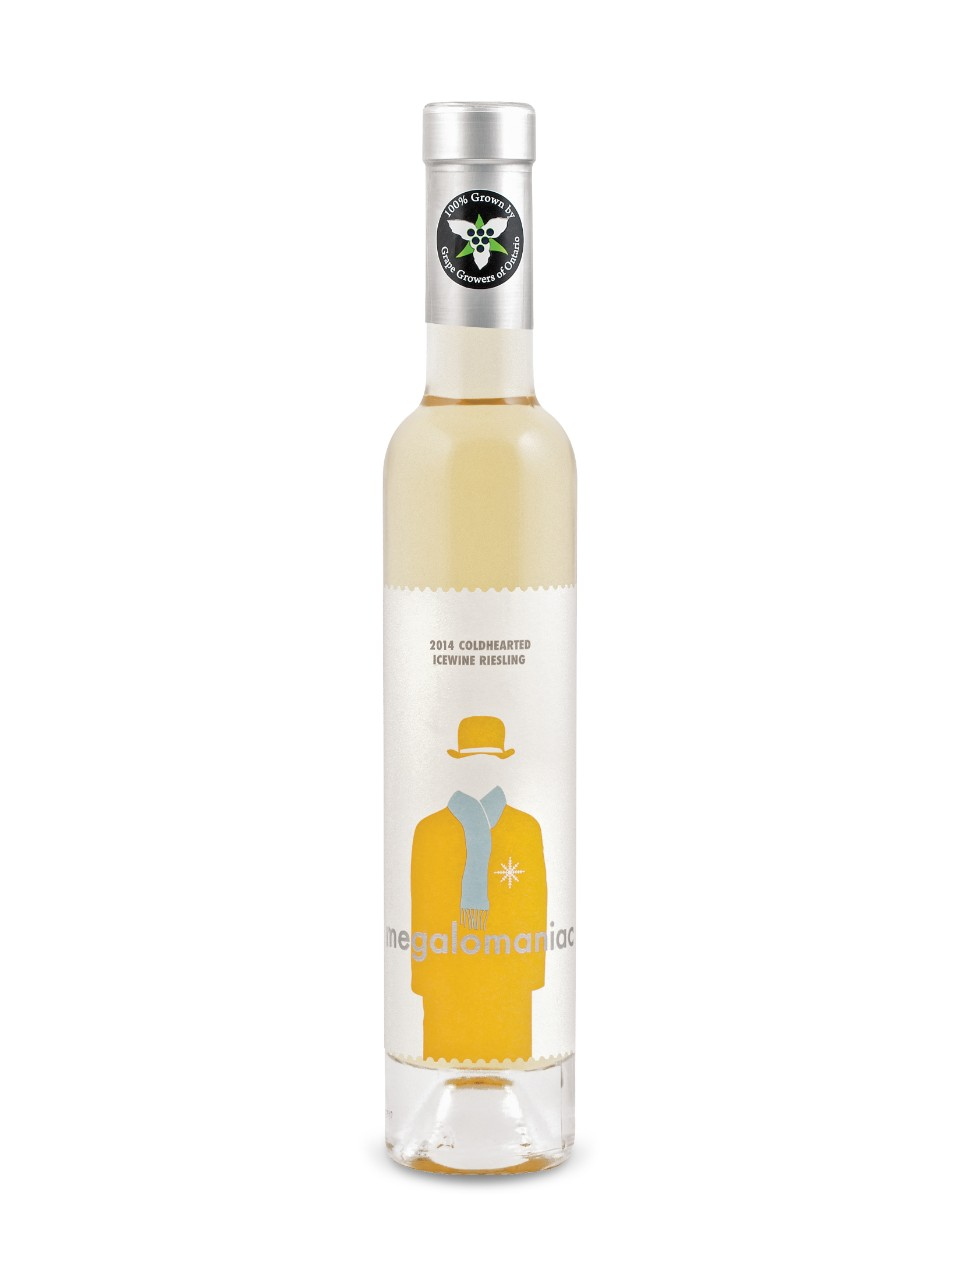 Vin de glace Riesling Coldhearted Megalomaniac 2014